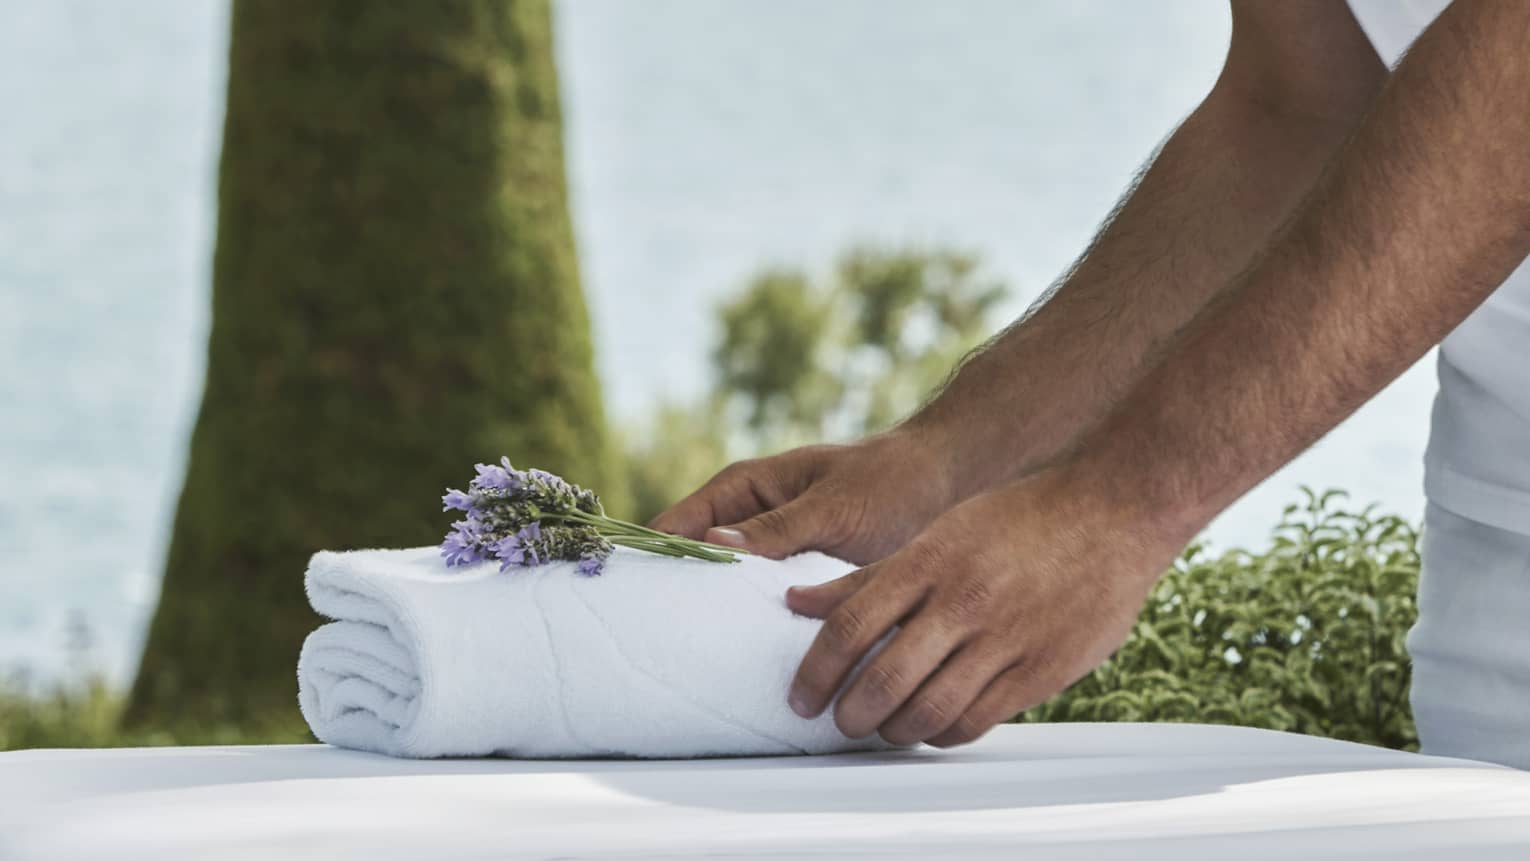 Close-up of hands setting on folded white towel with lavender sprig